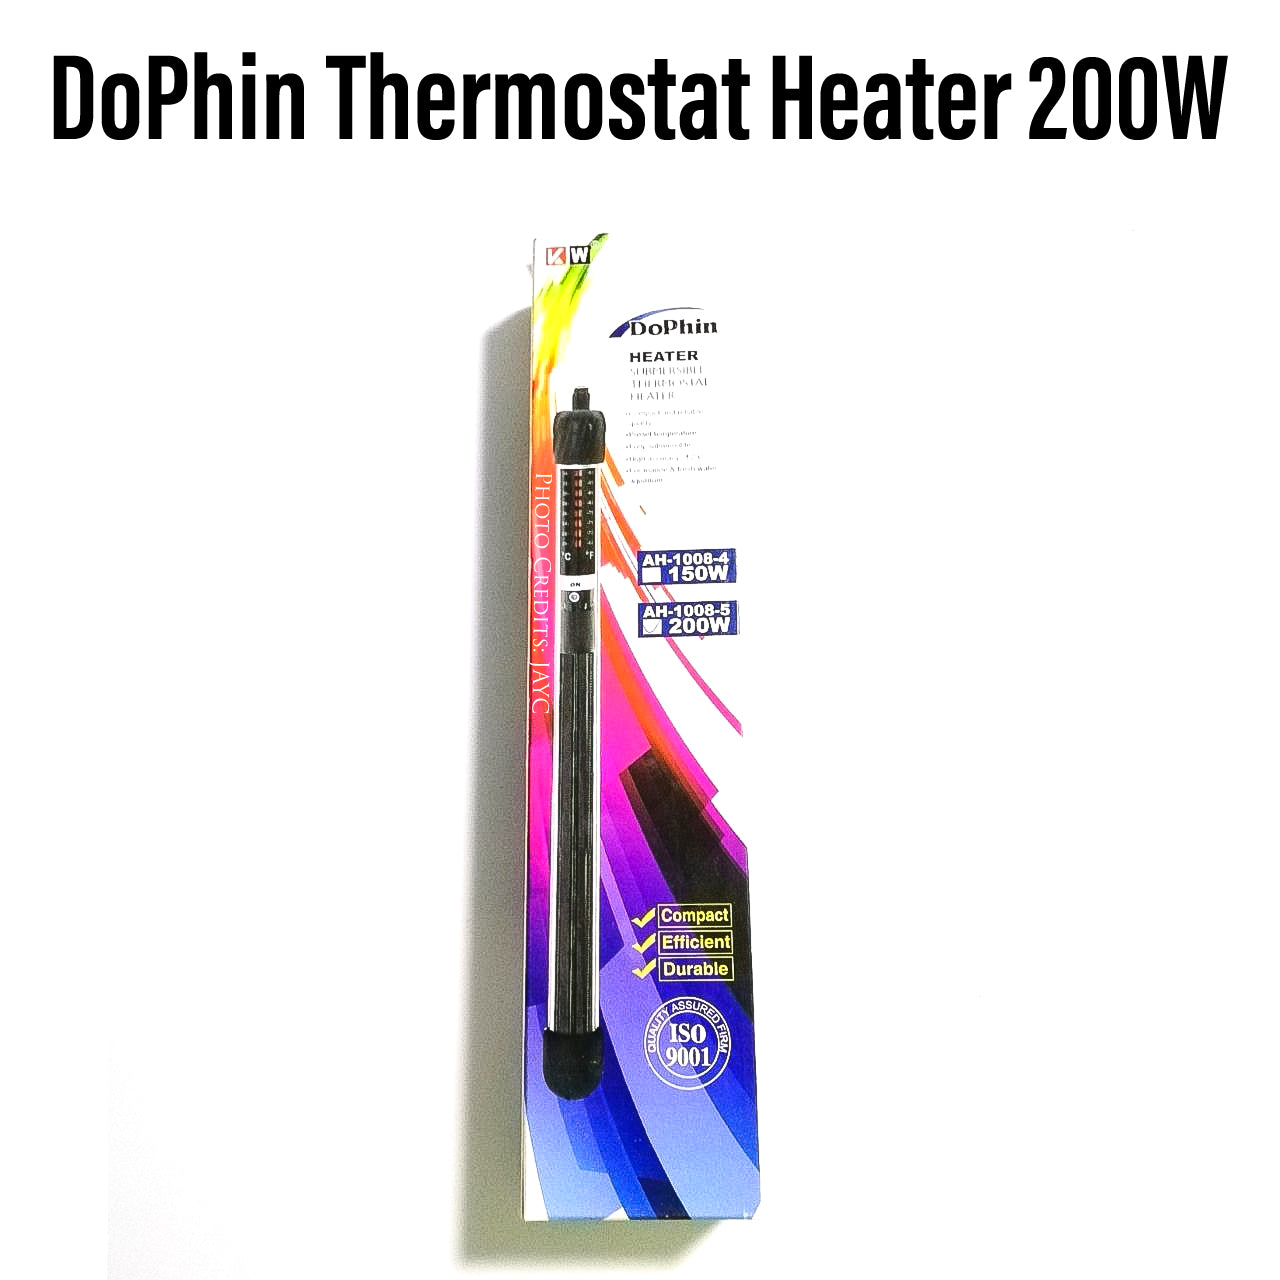 Dophin Submersible Thermostat Heater - 200 Watts